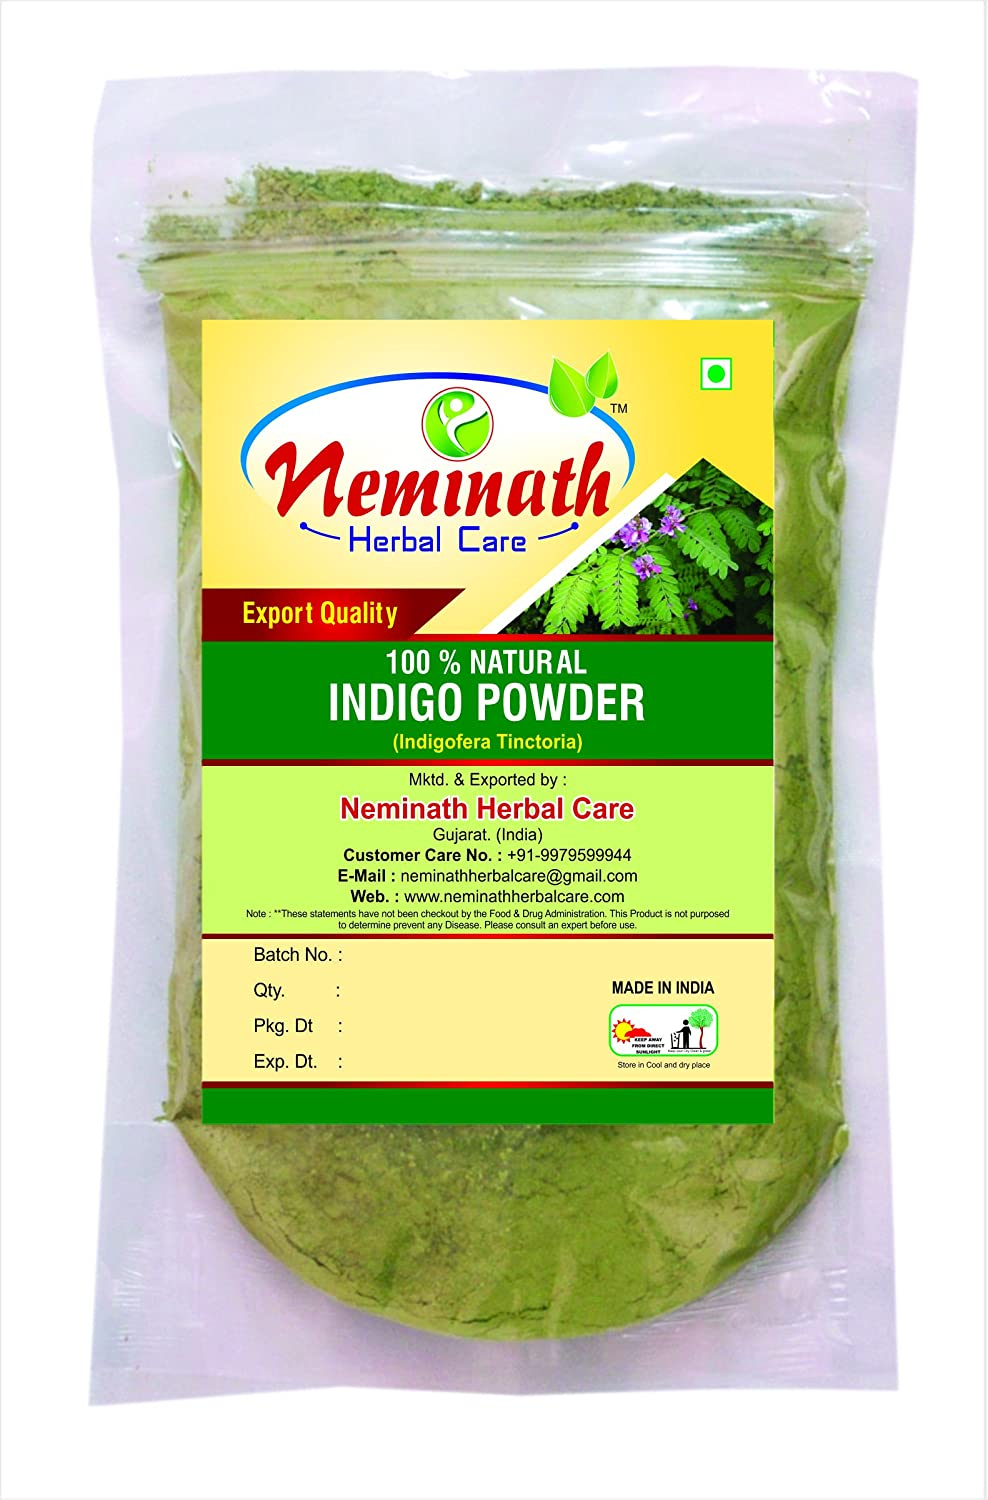 100% Natural Indigo Leaves (Indigofera Tinctoria) Powder As Hair Colorant Naturally (100 Grams/0.22LB) Neminath Herbal Care